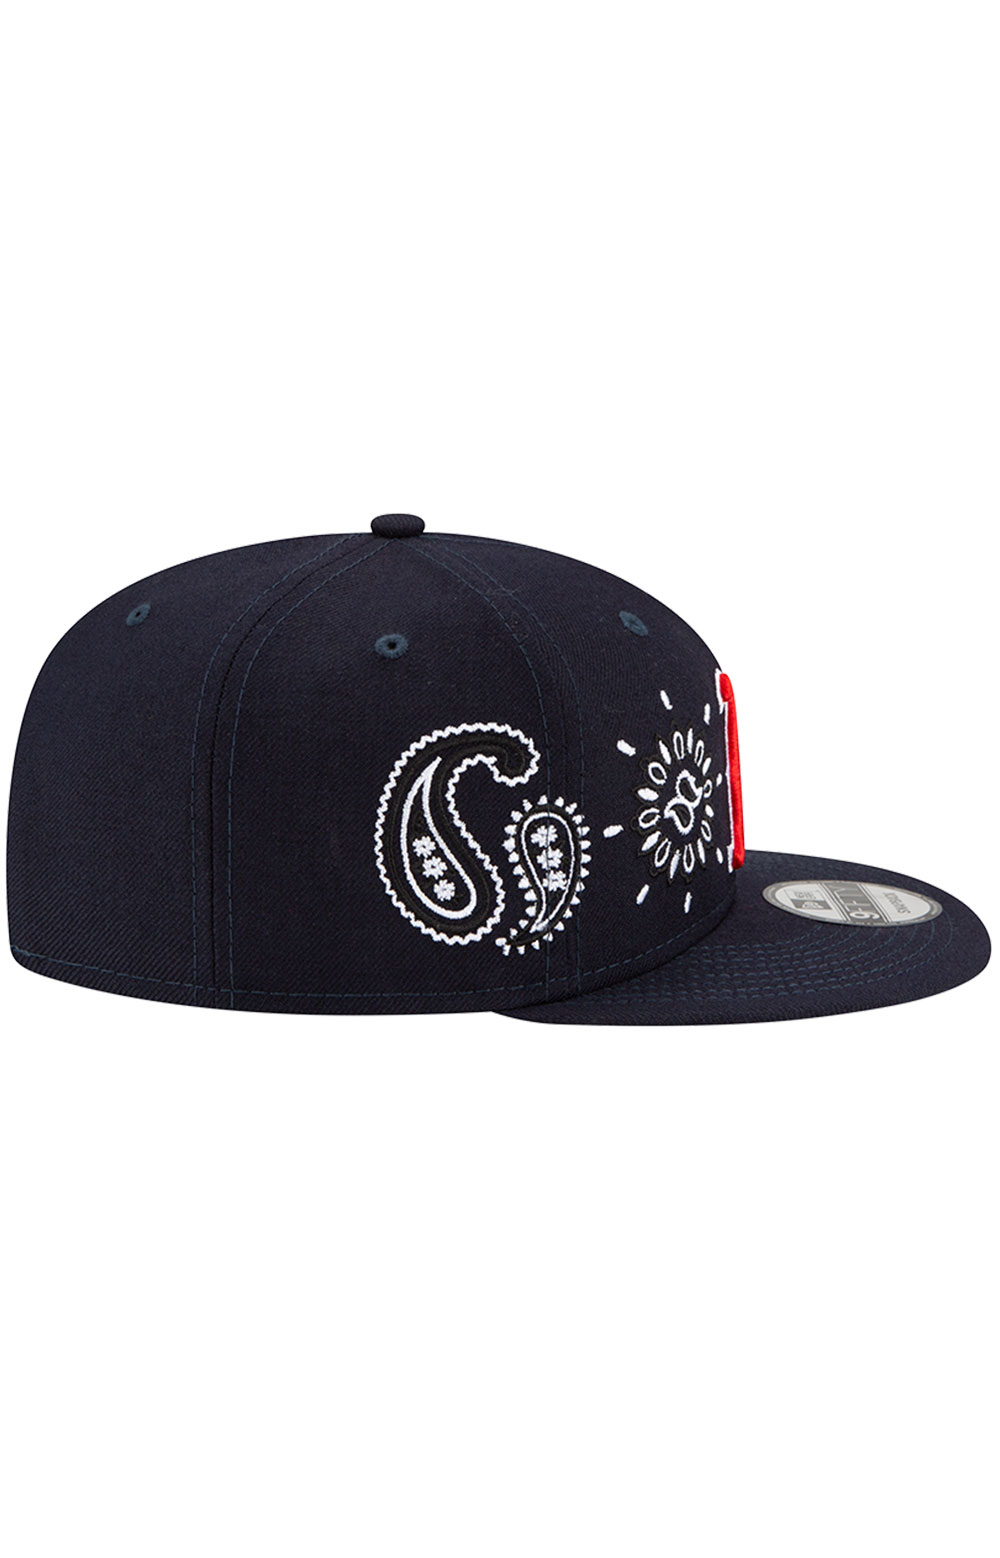 Boston Red Sox Paisley Elements 9Fifty Snap-Back Hat - Black 4